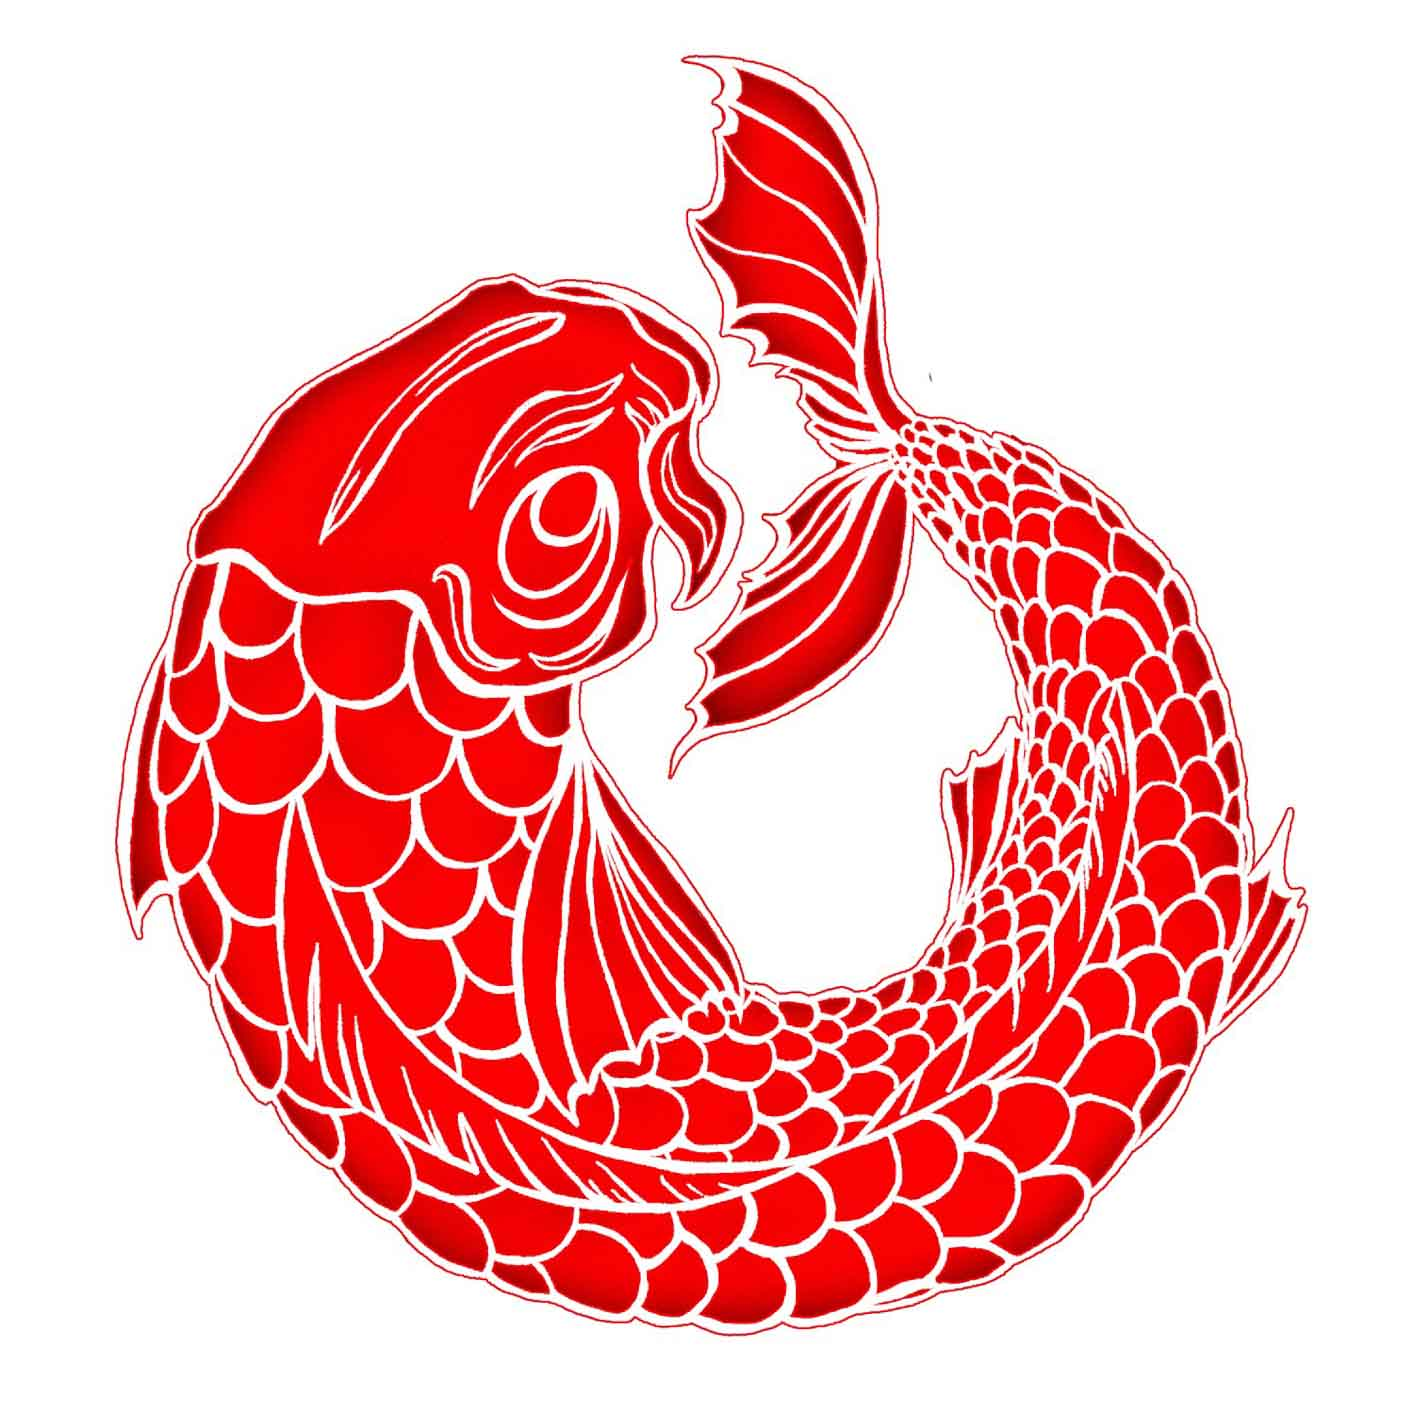 Red Fish Drawing at GetDrawings.com | Free for personal use Red Fish ...